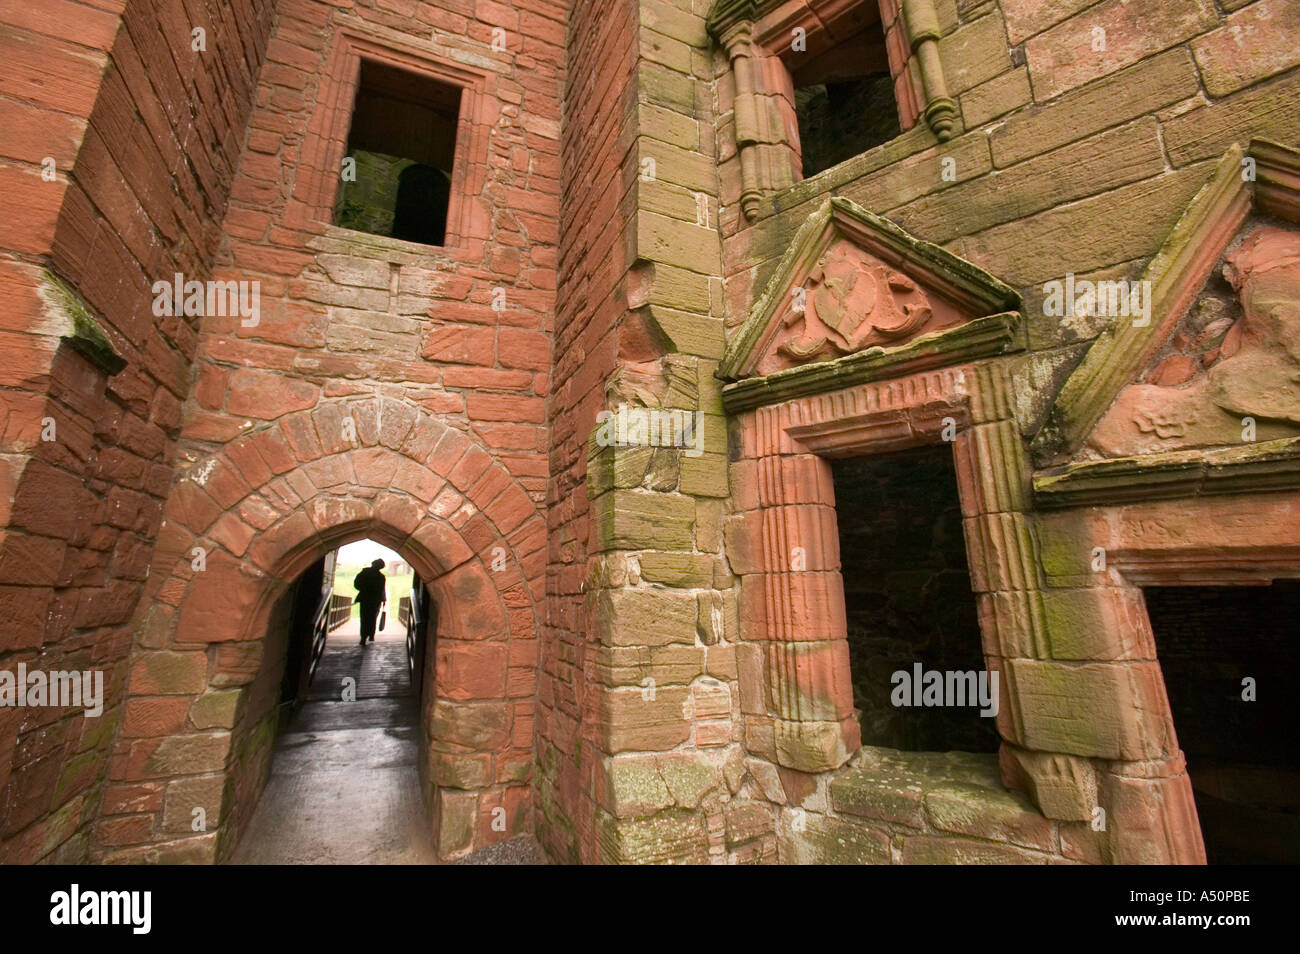 a visitor at Caerlaverock castle Dumfrieshire Scotland - Stock Image